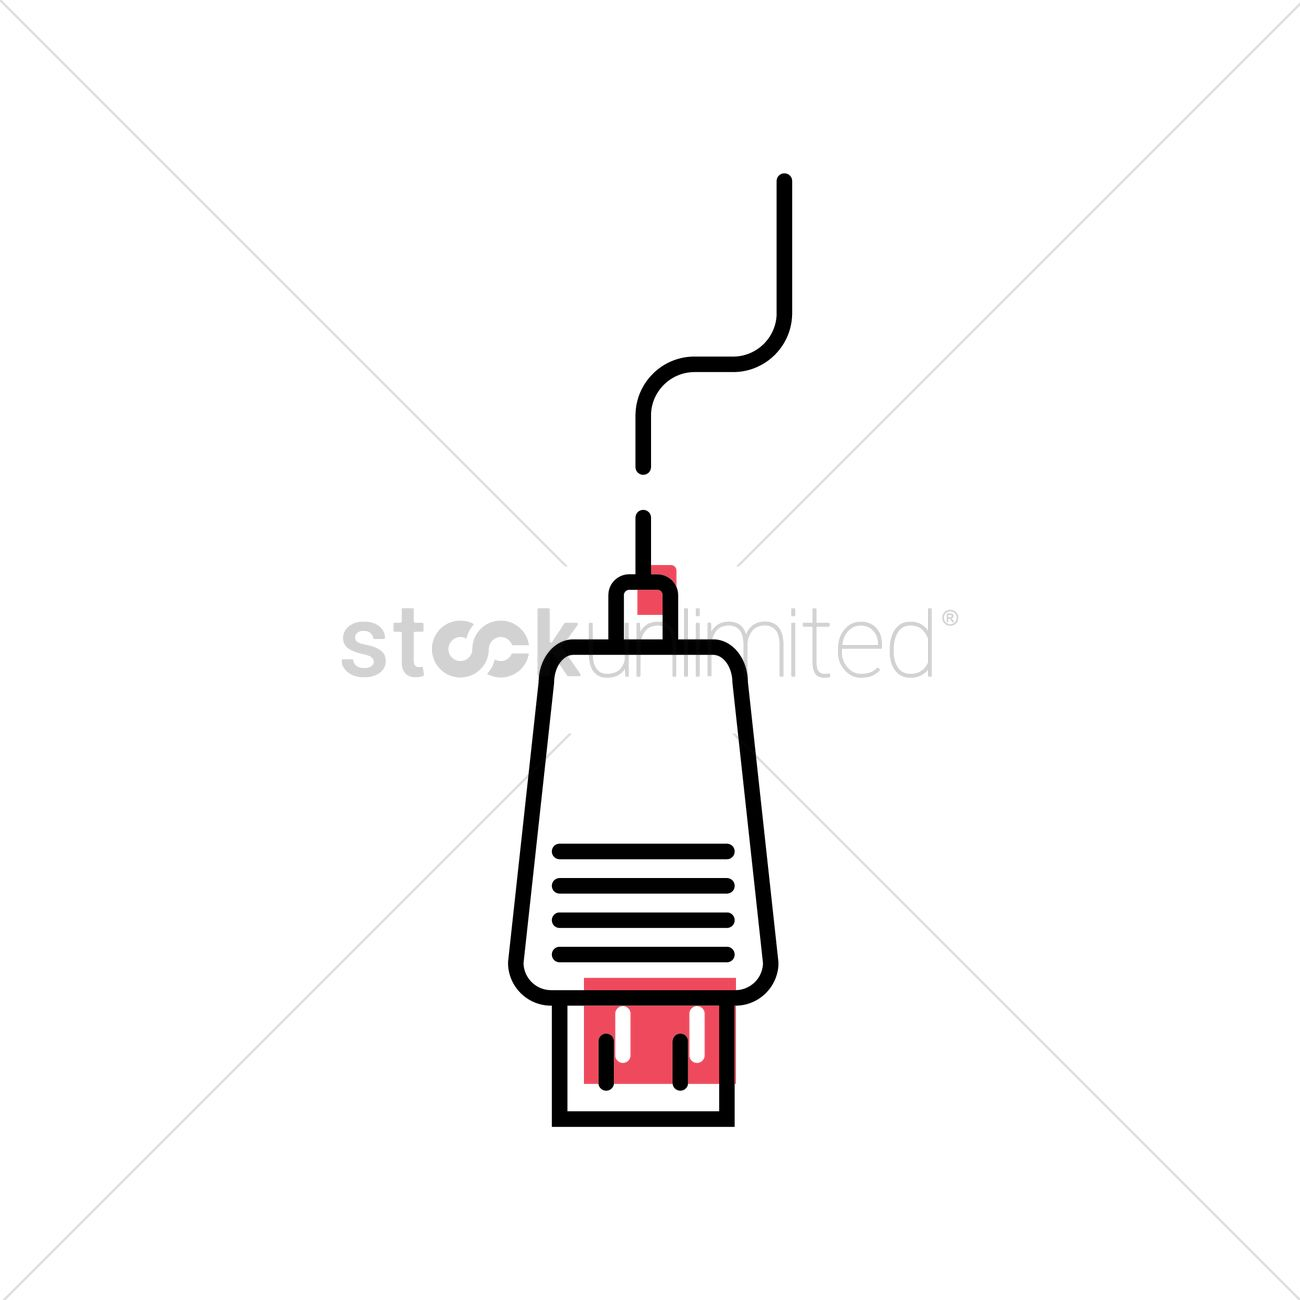 Cable wire Vector Image - 1490753 | StockUnlimited